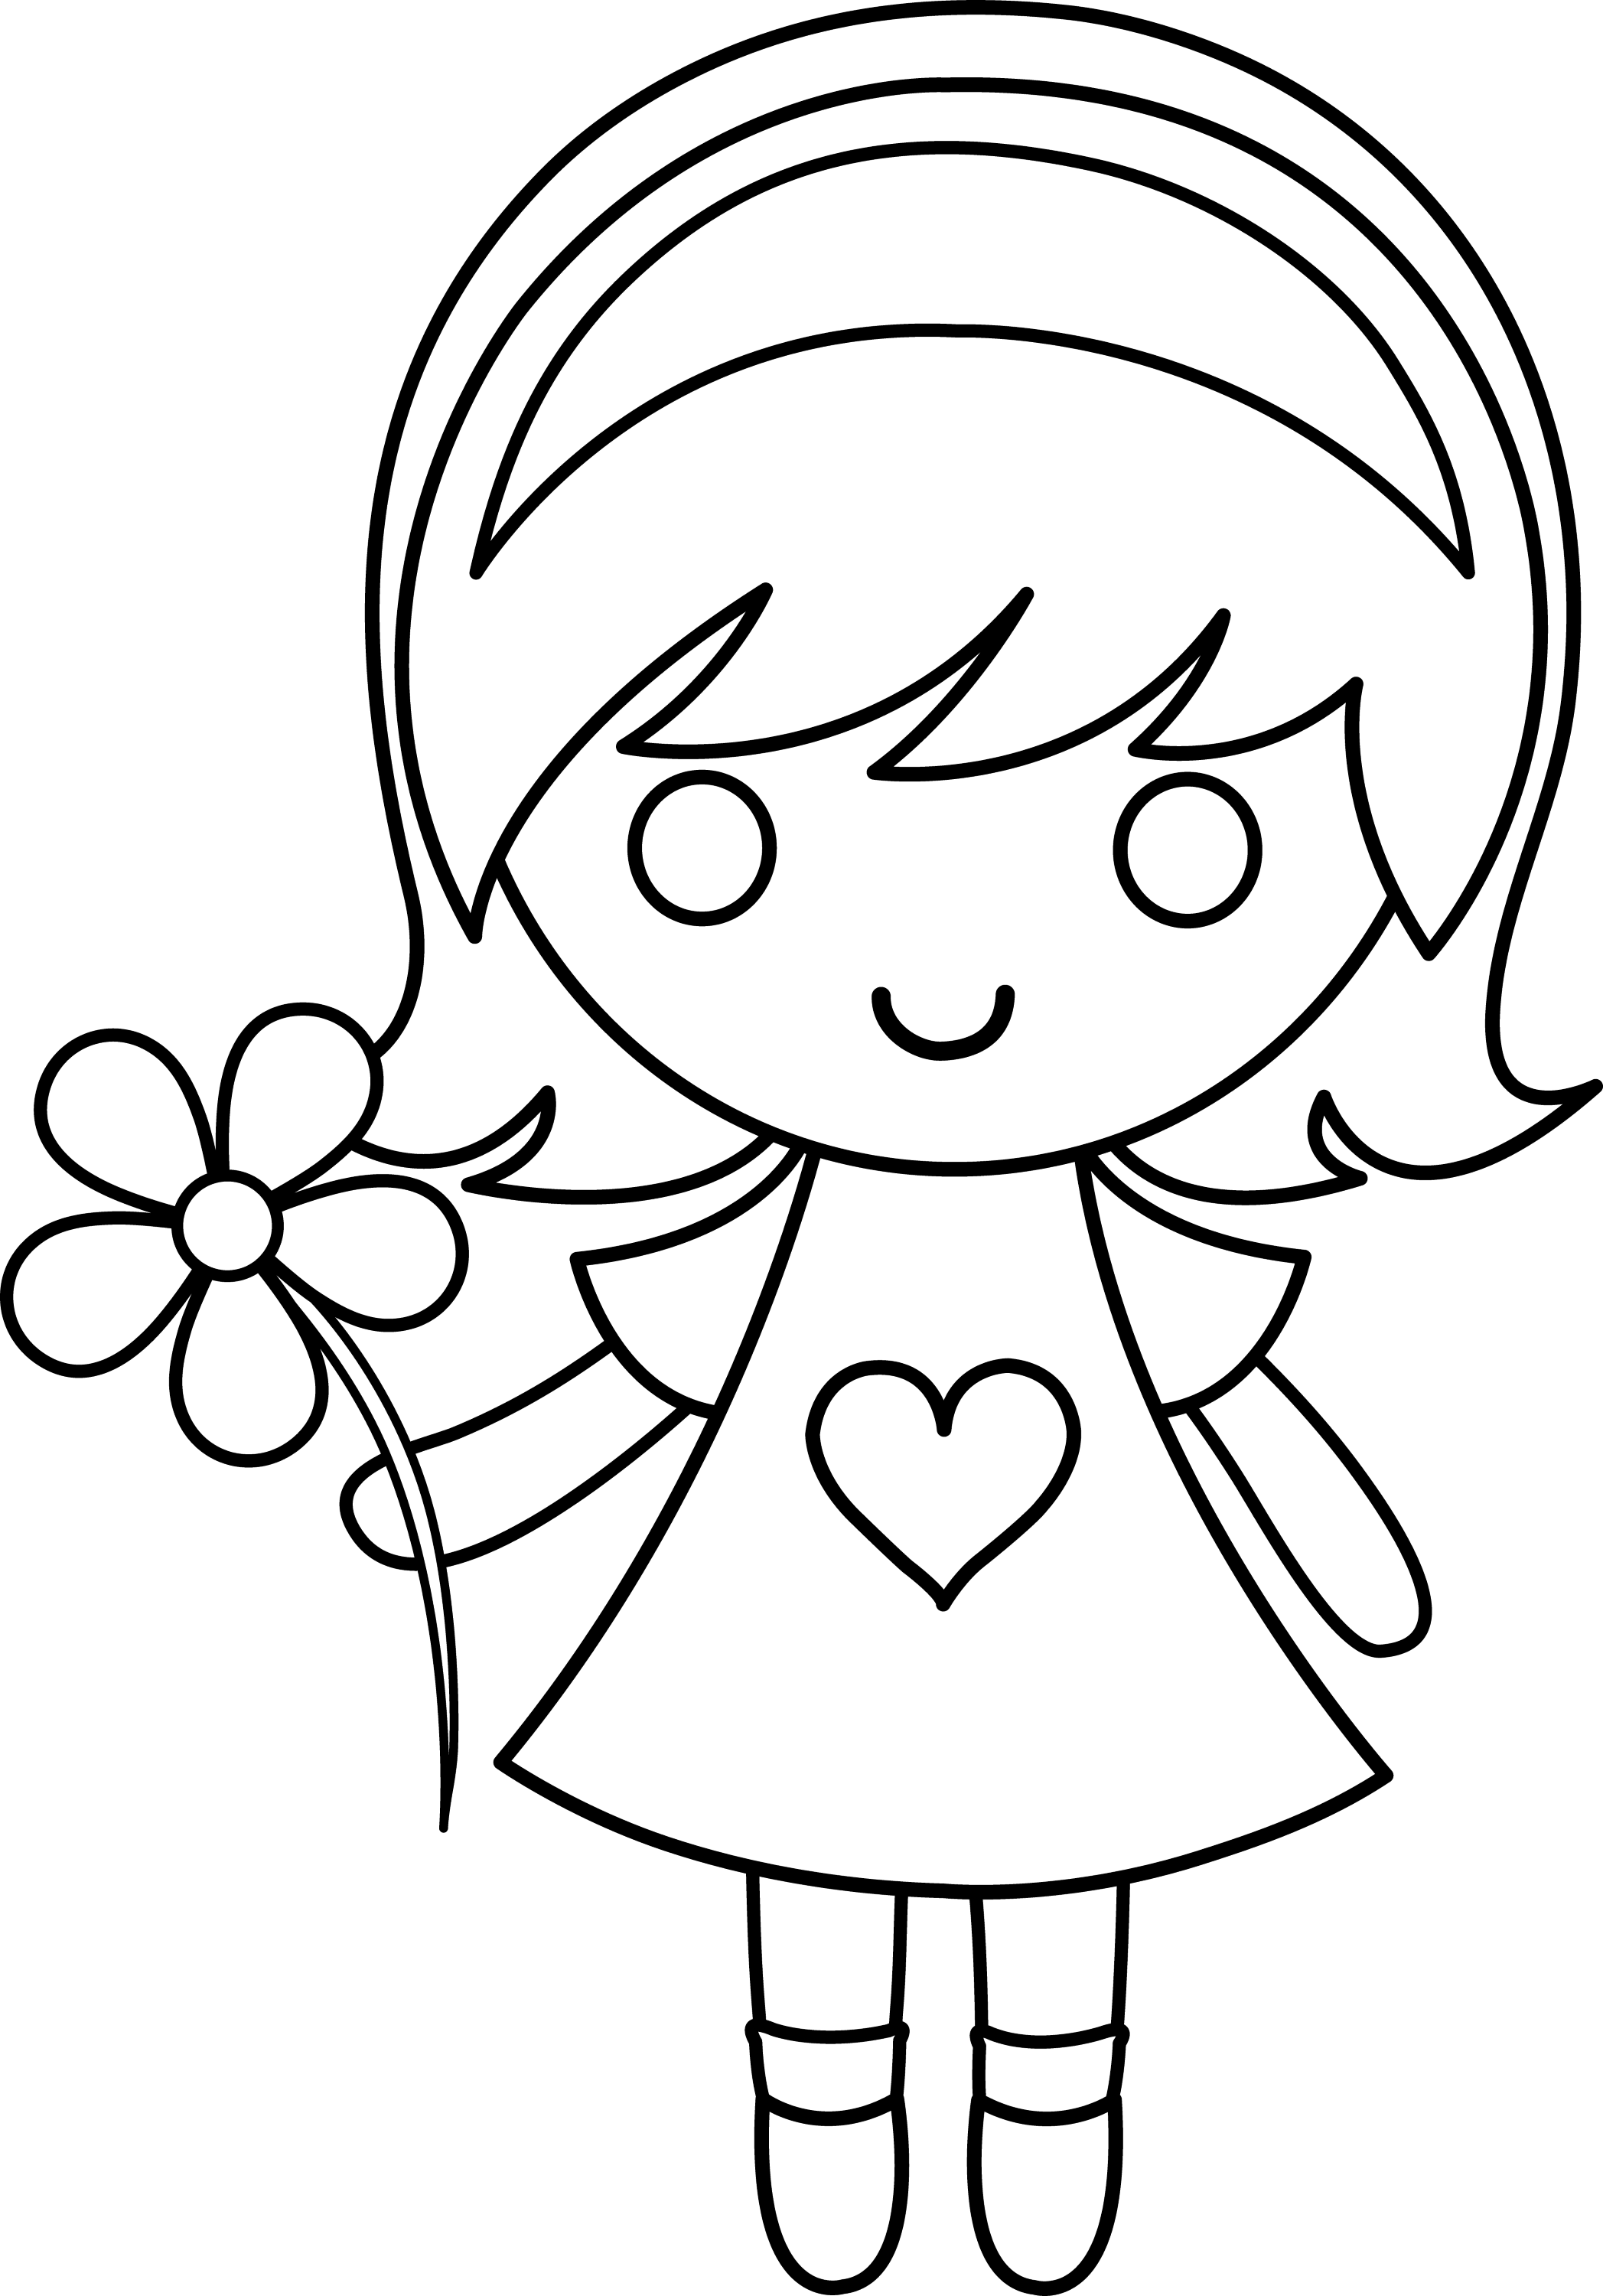 coloring pages of little girl - photo#17